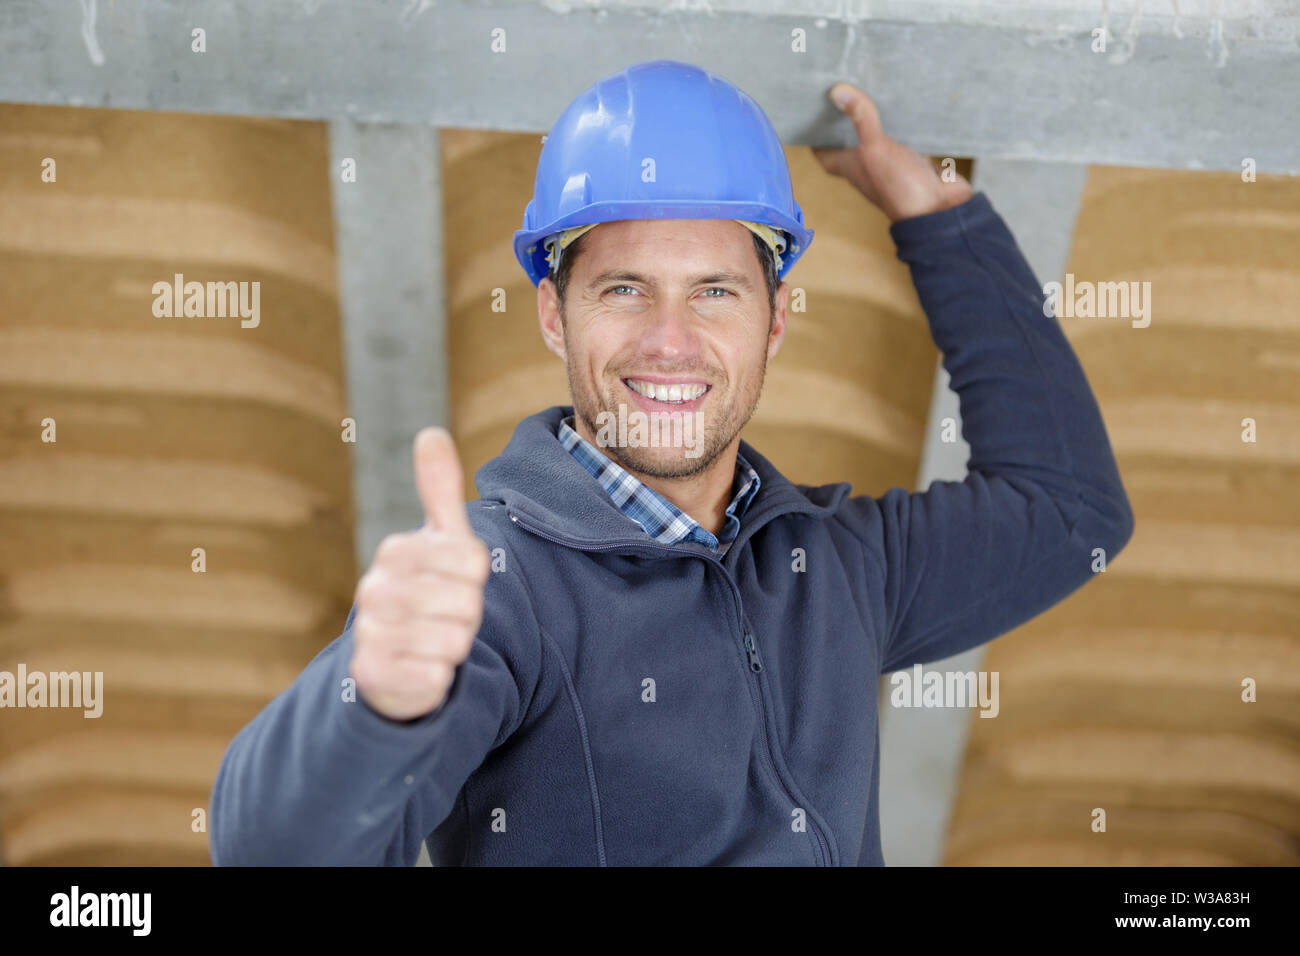 a builder is showing a thumb up - Stock Image